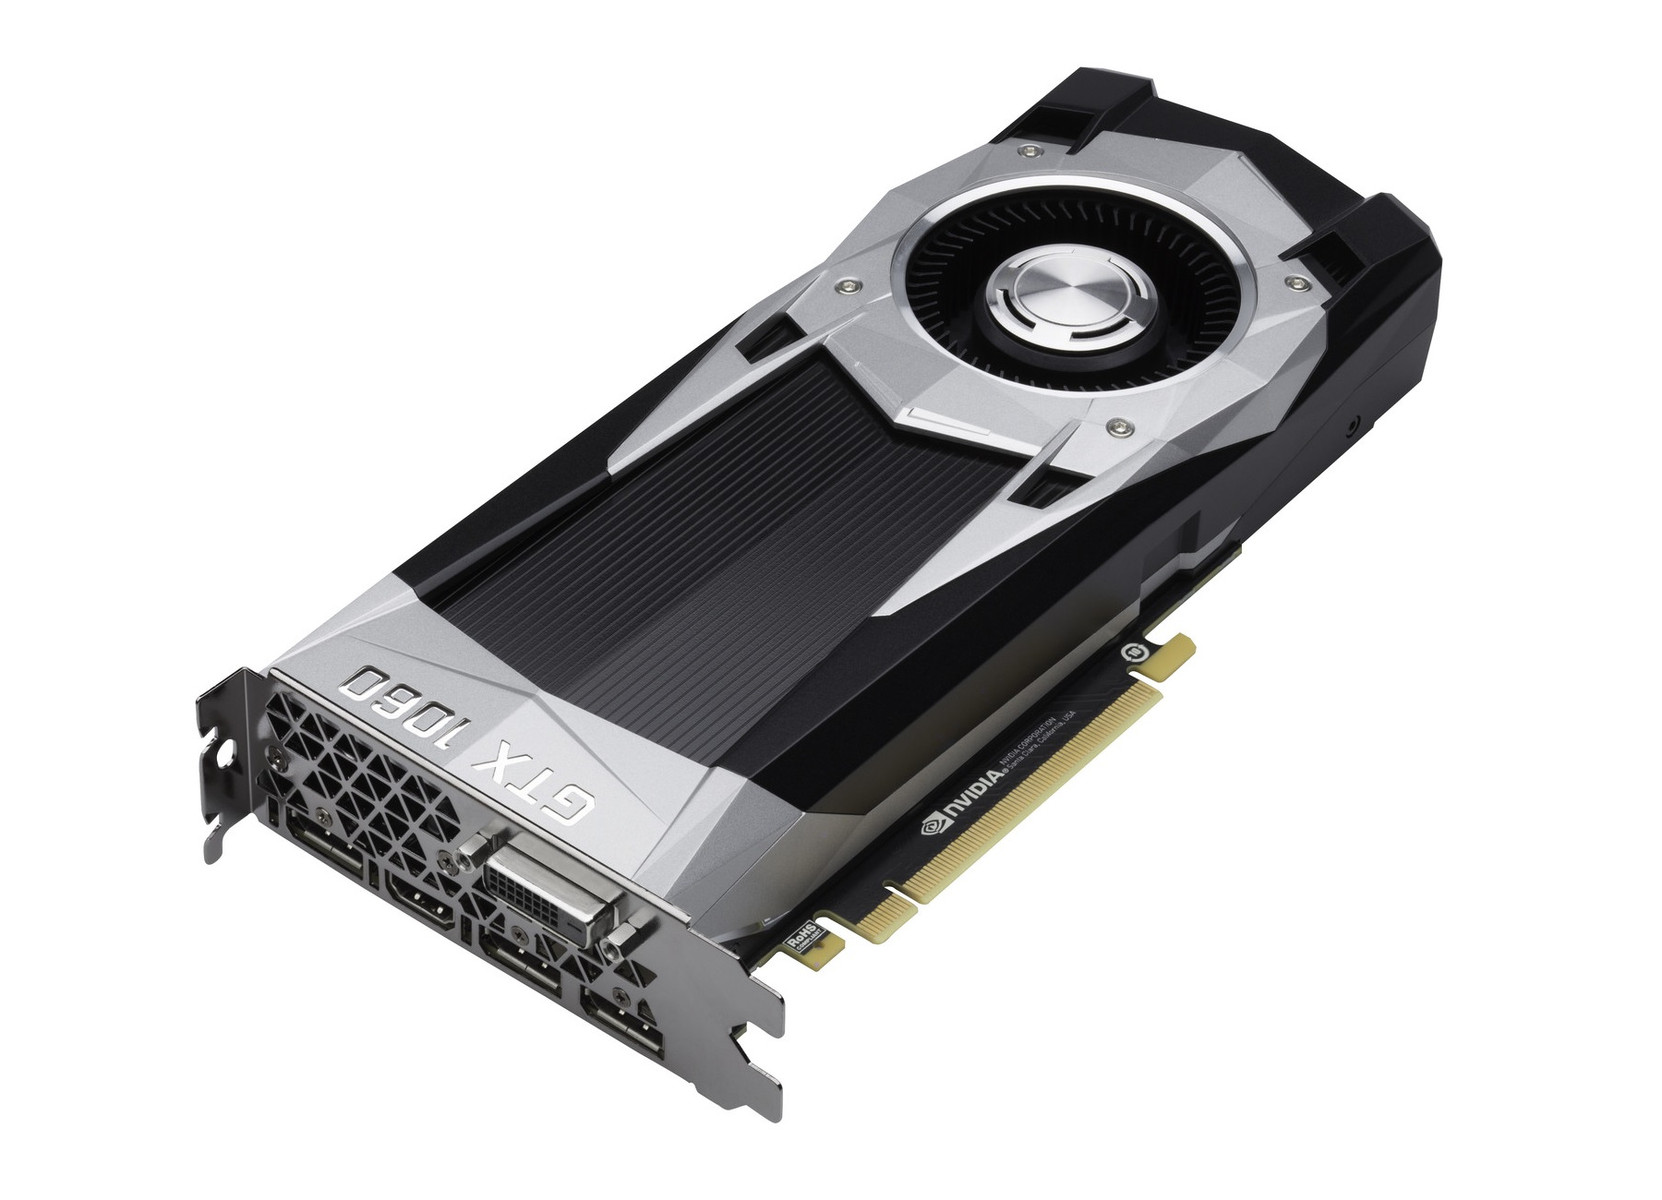 Driver Nvidia Gtx 1060 Disables Sli On 3gb Cards Evga Geforce Ftw Gaming Acx 30 06g P4 6368 Kr 6gb Gddr5